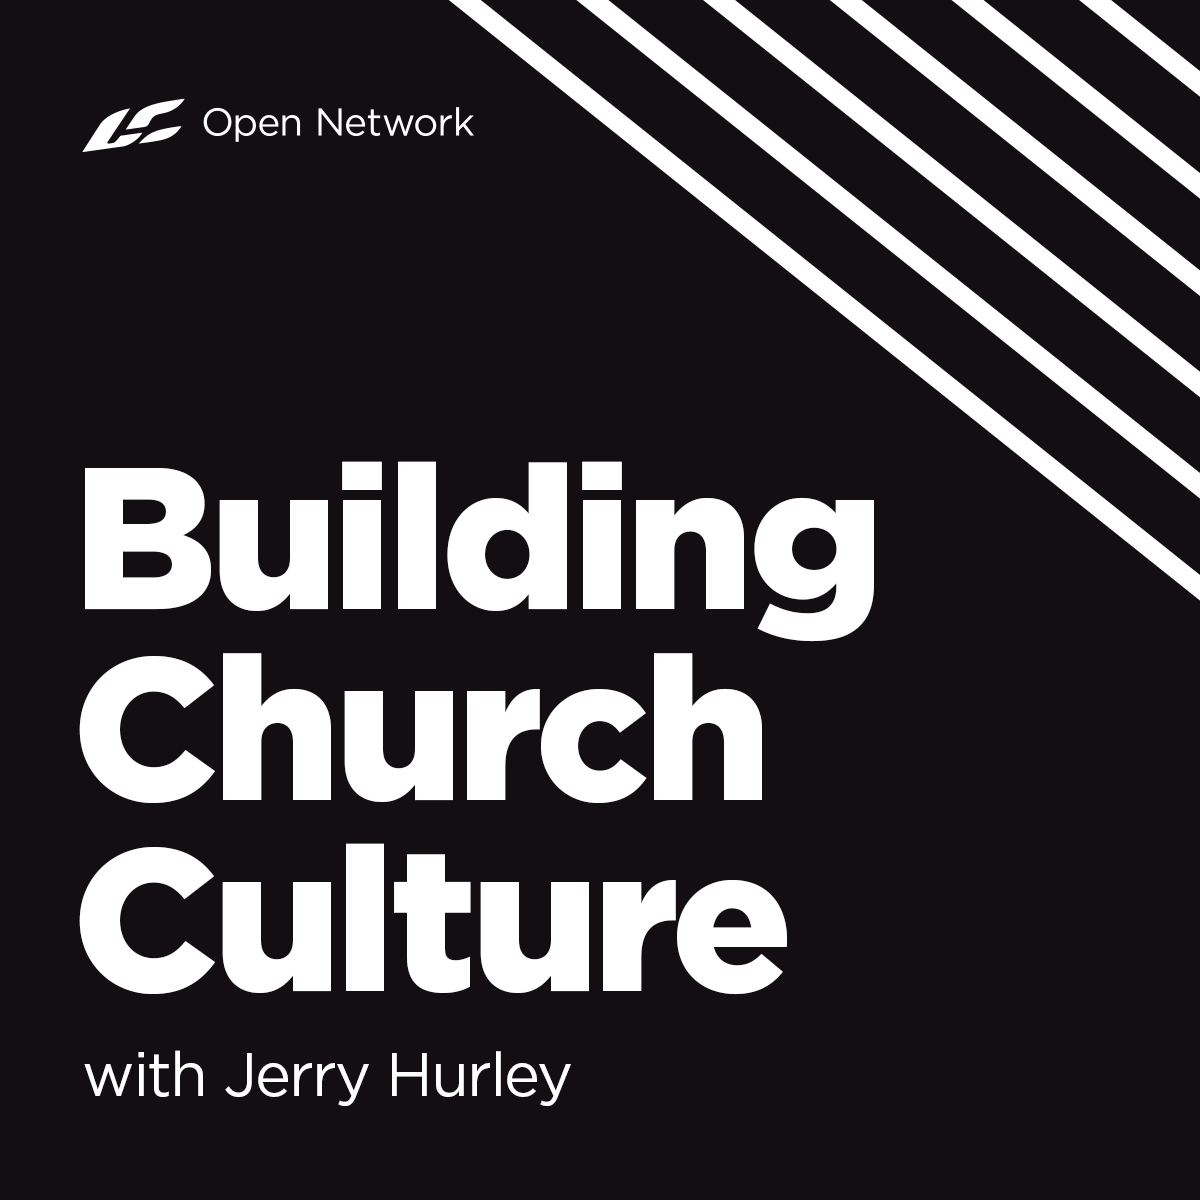 Building Church Culture with Jerry Hurley